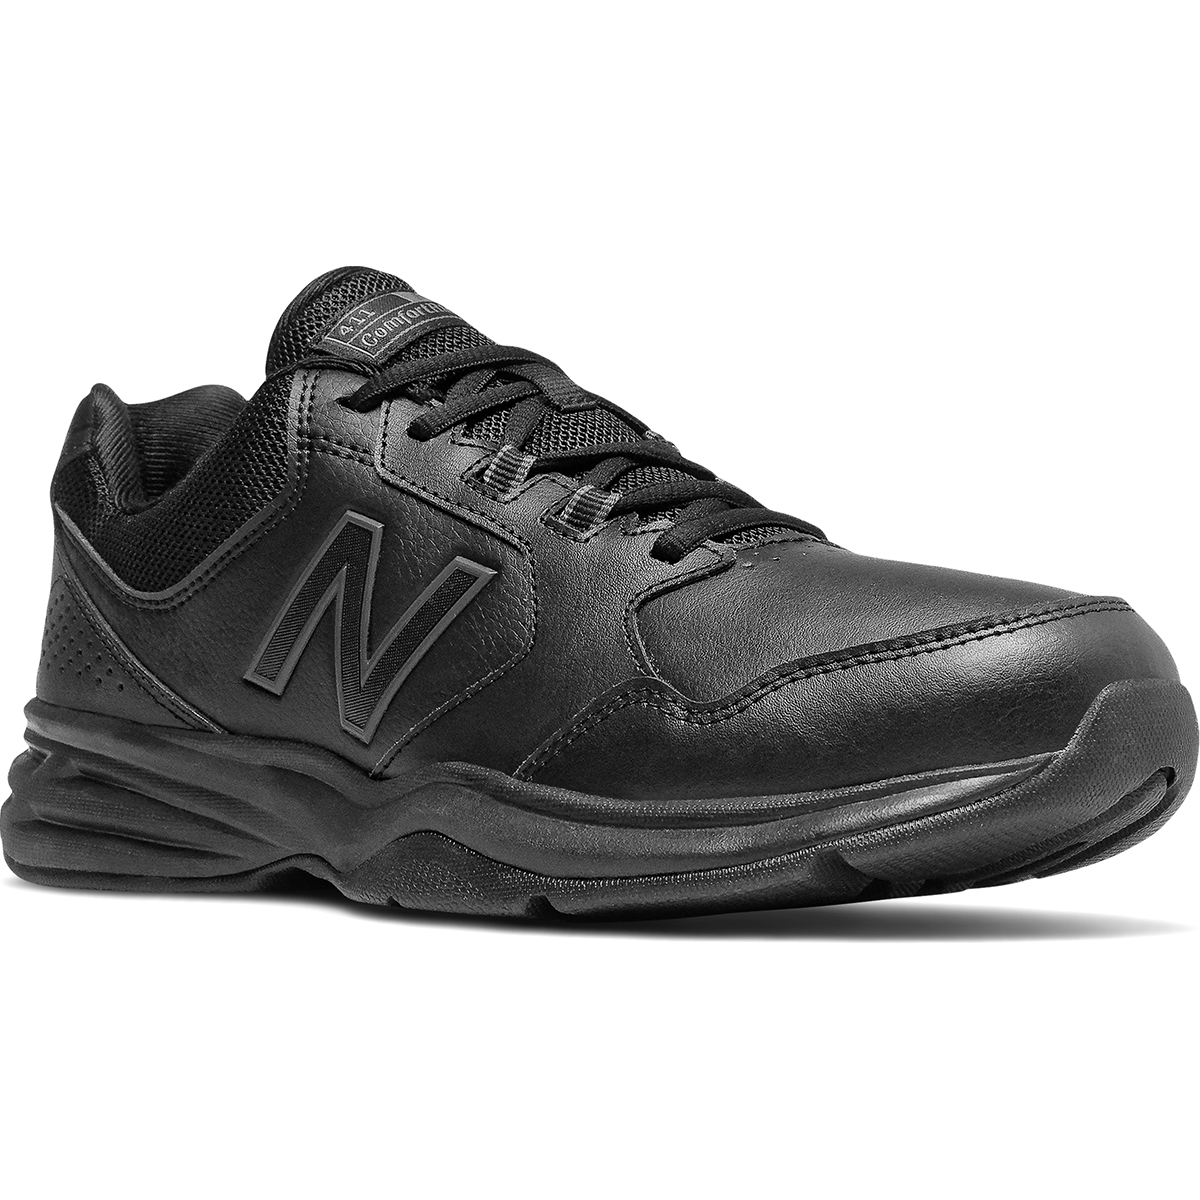 New Balance Men's 411 Walking Shoes - Black, 10